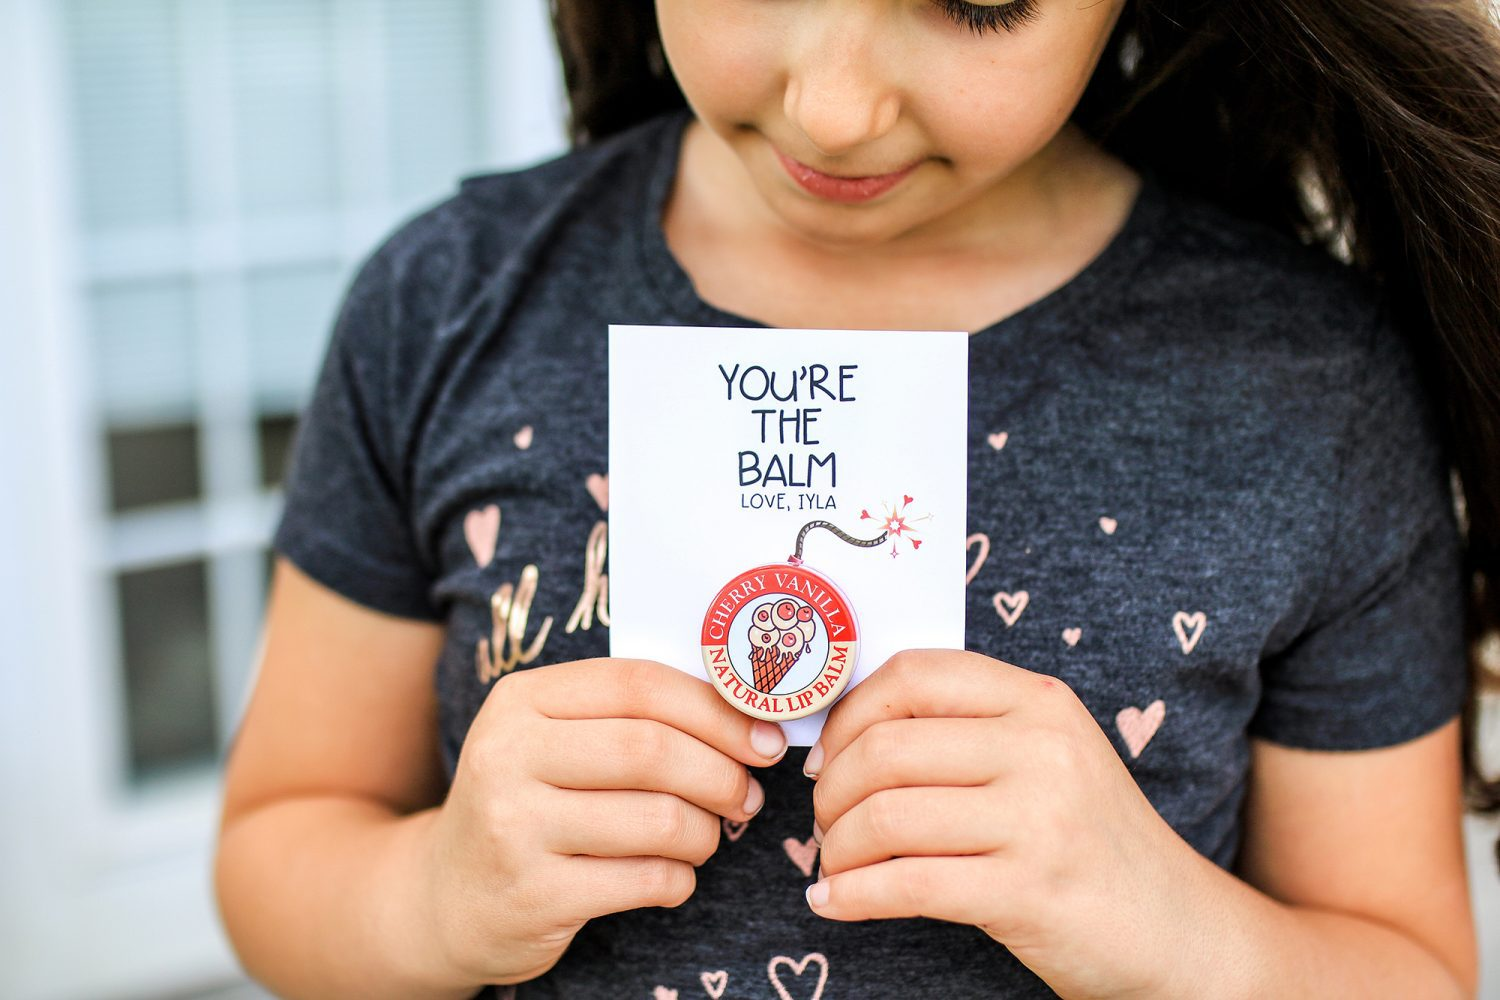 you're the balm, you're the bomb, valentines day, valentine, kids valentine, gift idea, diy, kids craft, crafts for kids, 2019, candy, ideas for valentines day, gifts for kids